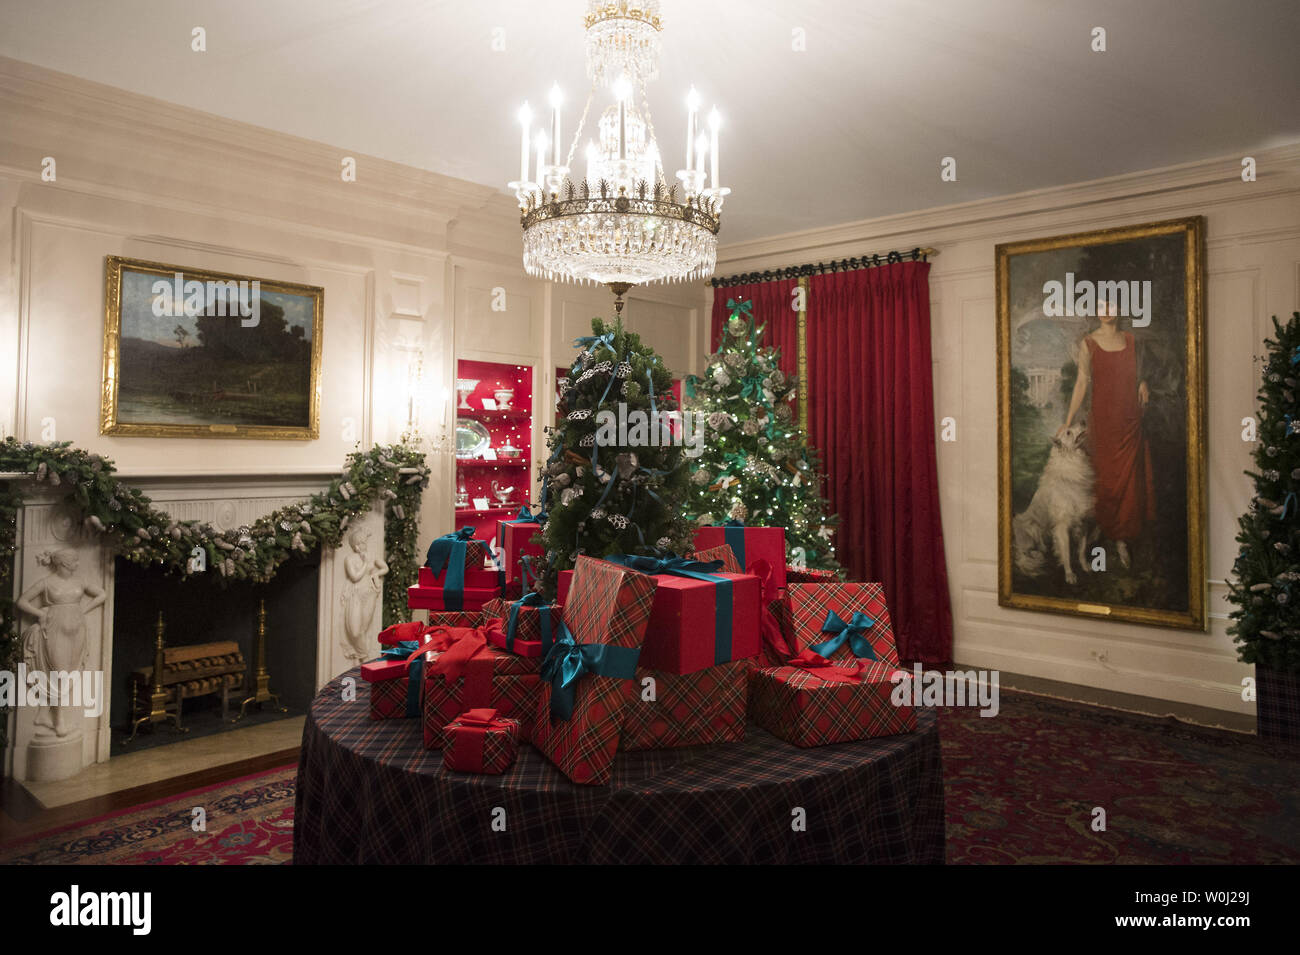 The China Room is seen decorated during a holiday tour at the White House in Washington, D.C. on December 2, 2015. This year's team is 'A Timeless Tradition, and reflects long-held traditions cherished across America and commemorates extradorinaiy moments that help shaped the county. Photo by Kevin Dietsch/UPI. - Stock Image